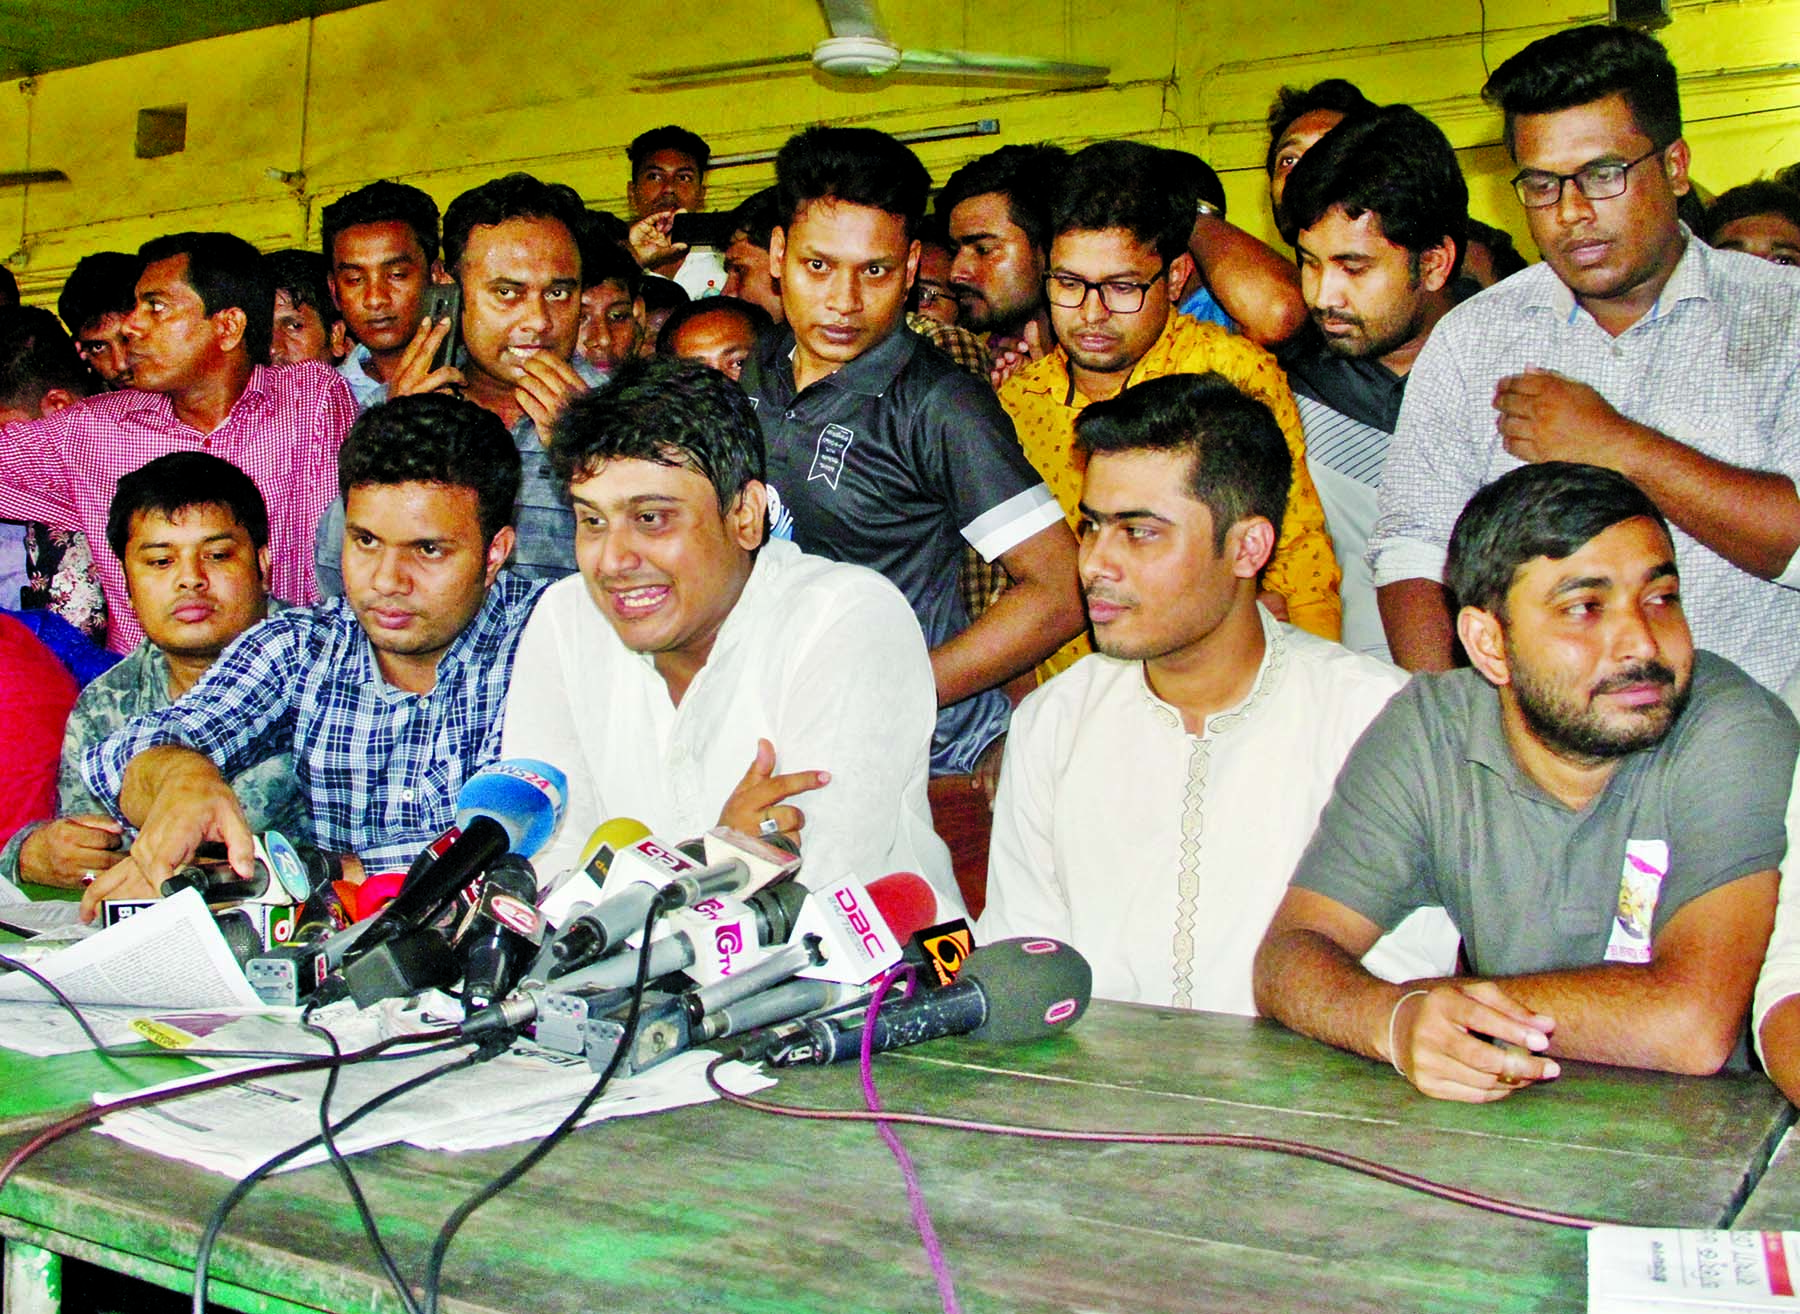 Al Nahian Khan Joy, Acting President of Bangladesh Chhatra League speaking at a press conference at Madhur's Canteen on  Dhaka  University campus yesterday.